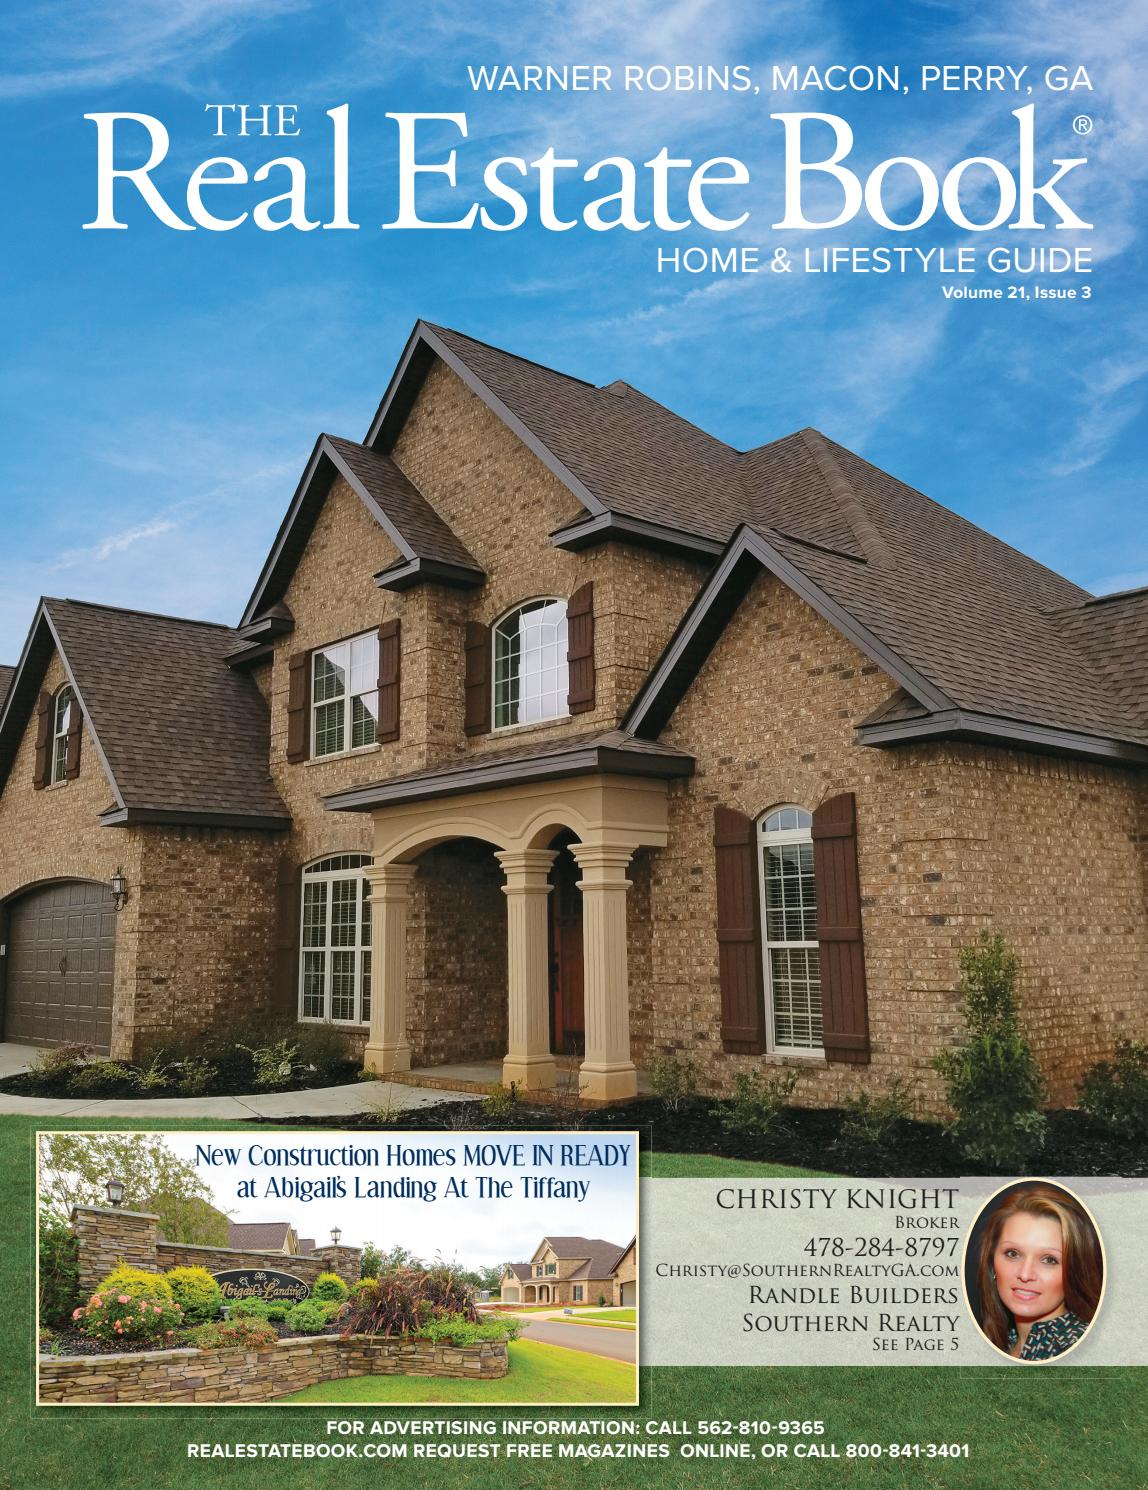 The Real Estate Book Warner Robins Macon Perry Ga Vol 21 Iss 3 By Issuu